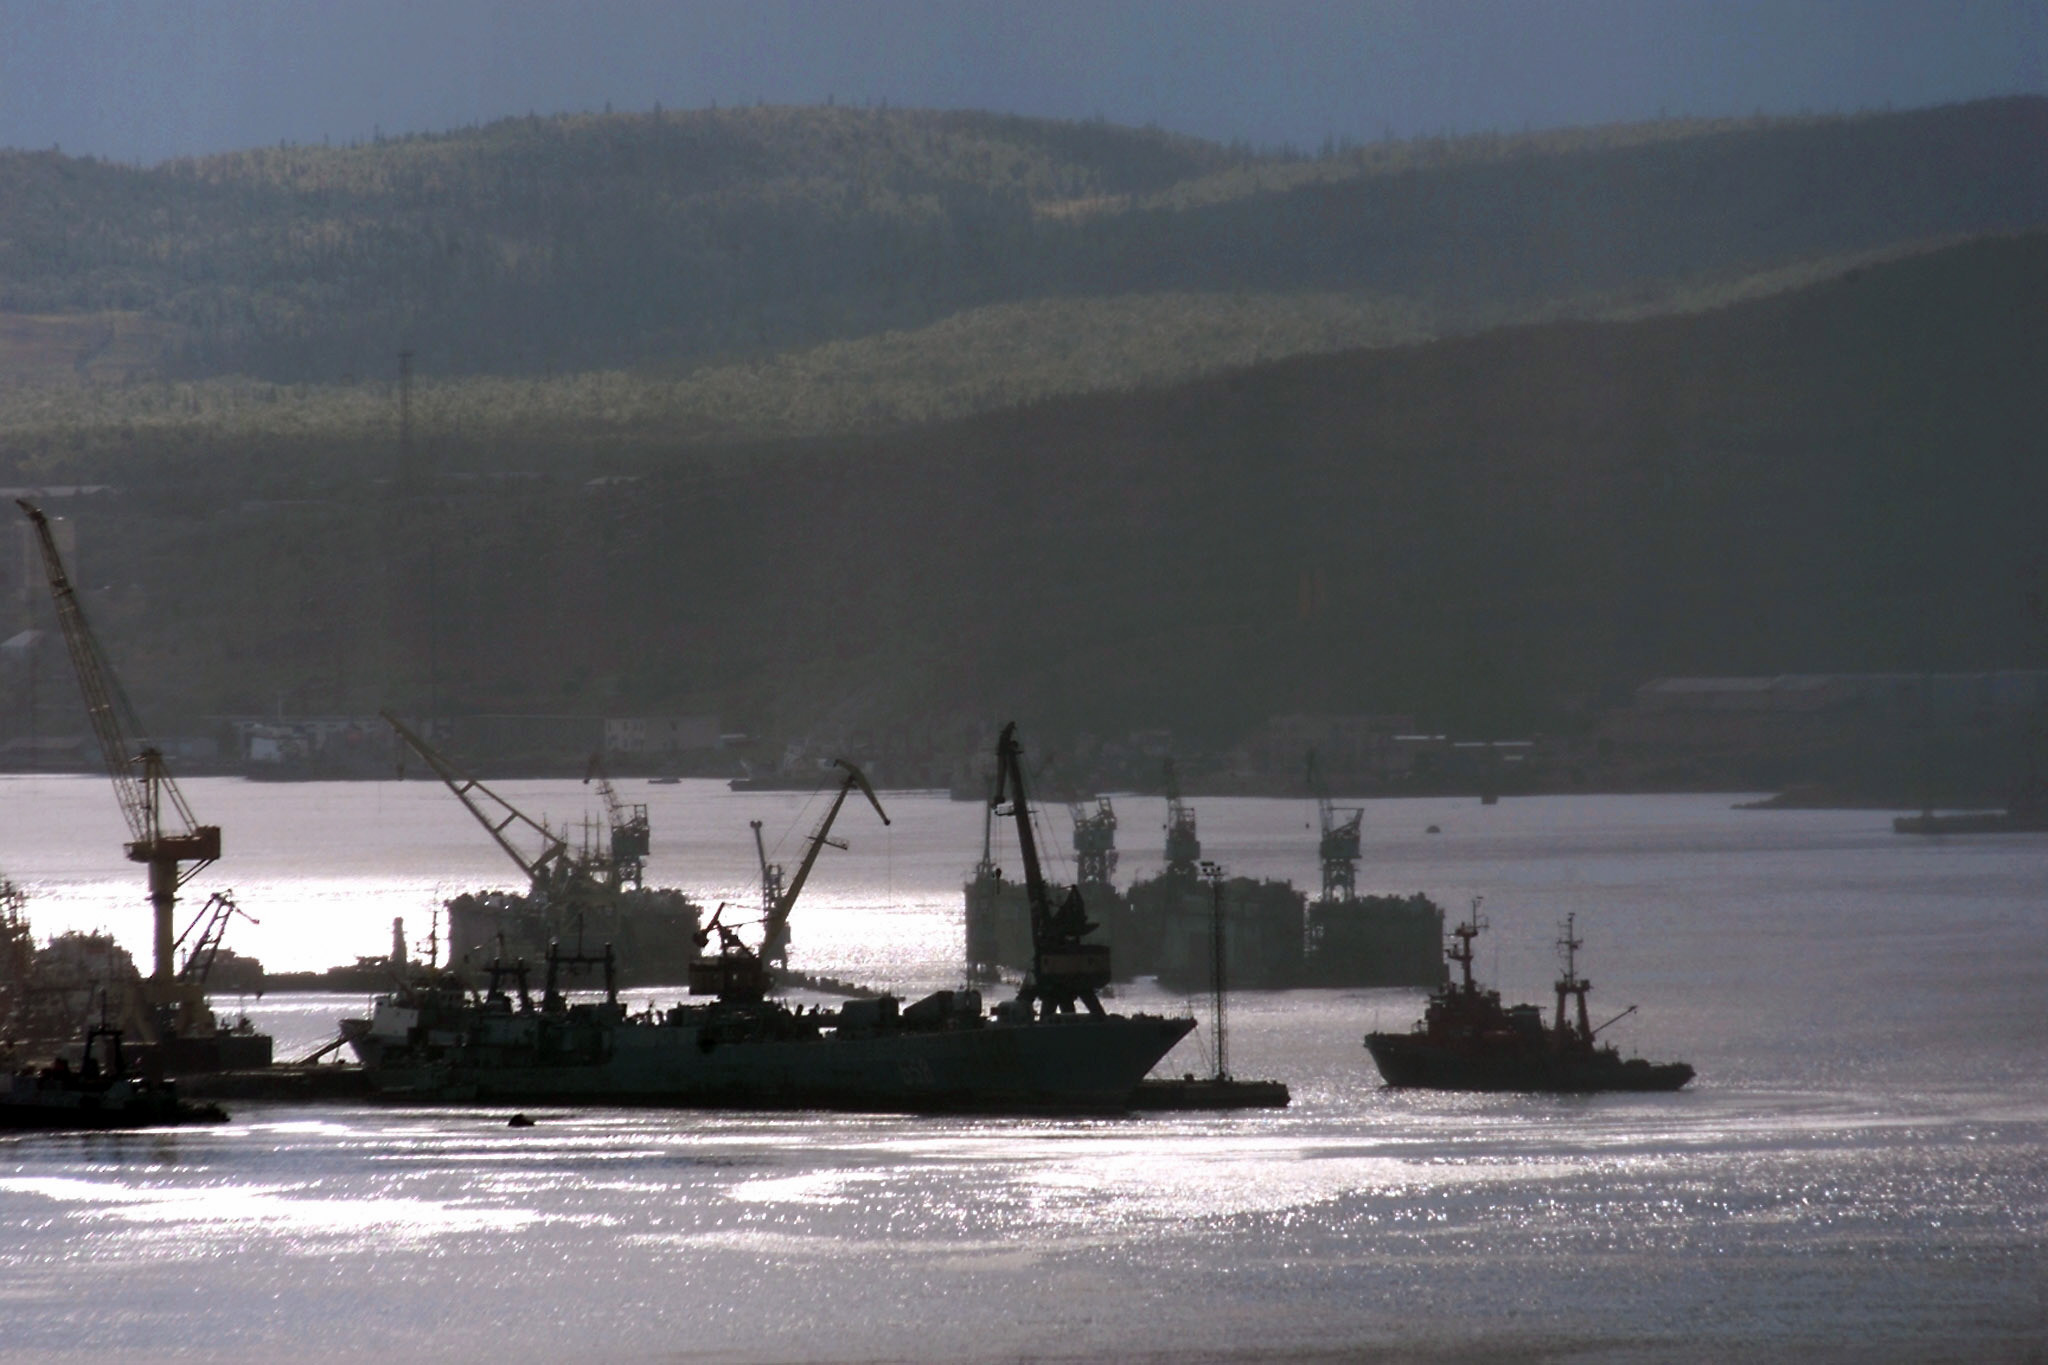 The northern port of Murmansk in Kol'skiy (Kola) peninsula on the Barents Sea. A new bill will allow Russia's FSB to autonomously take action against ships operating along the Russian Arctic coast. (Alexander Nemenov/AFP/Getty Images)